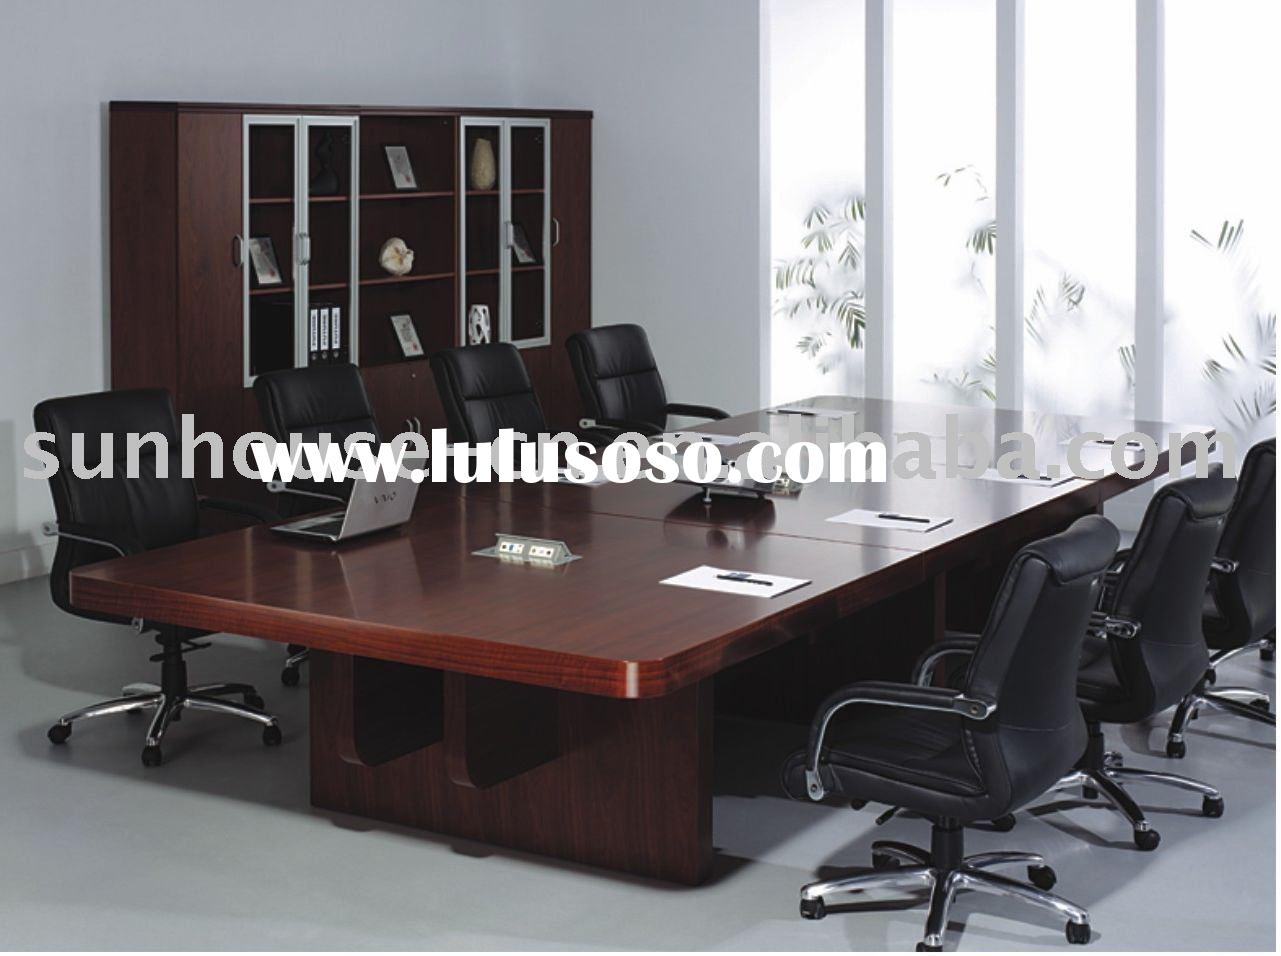 Wood office furniture manufacturers singapore